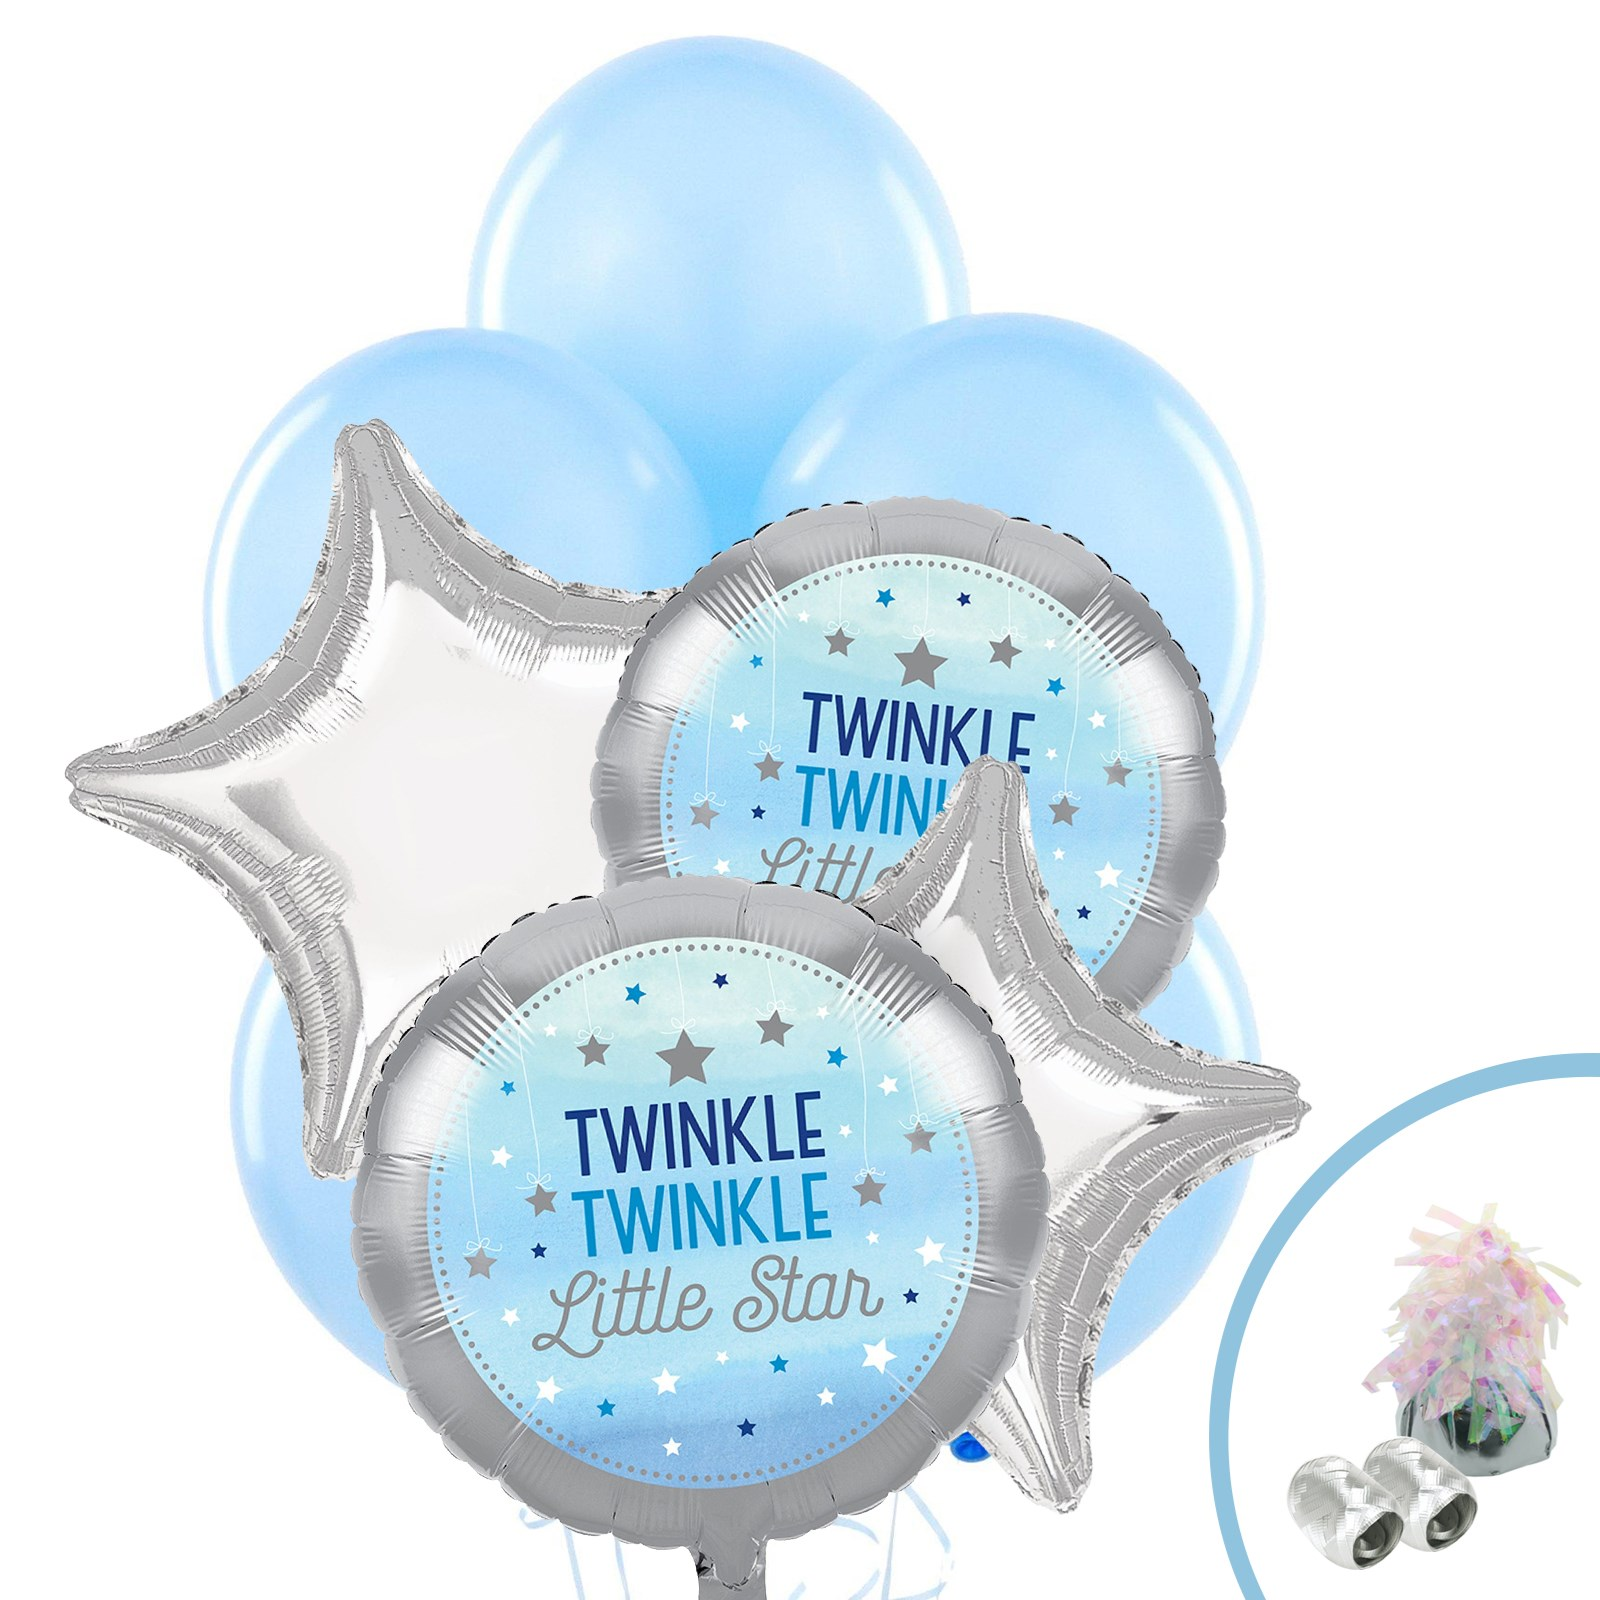 Blue Camouflage Party Decorations Twinkle Twinkle Little Star Party Supplies Birthdayexpresscom